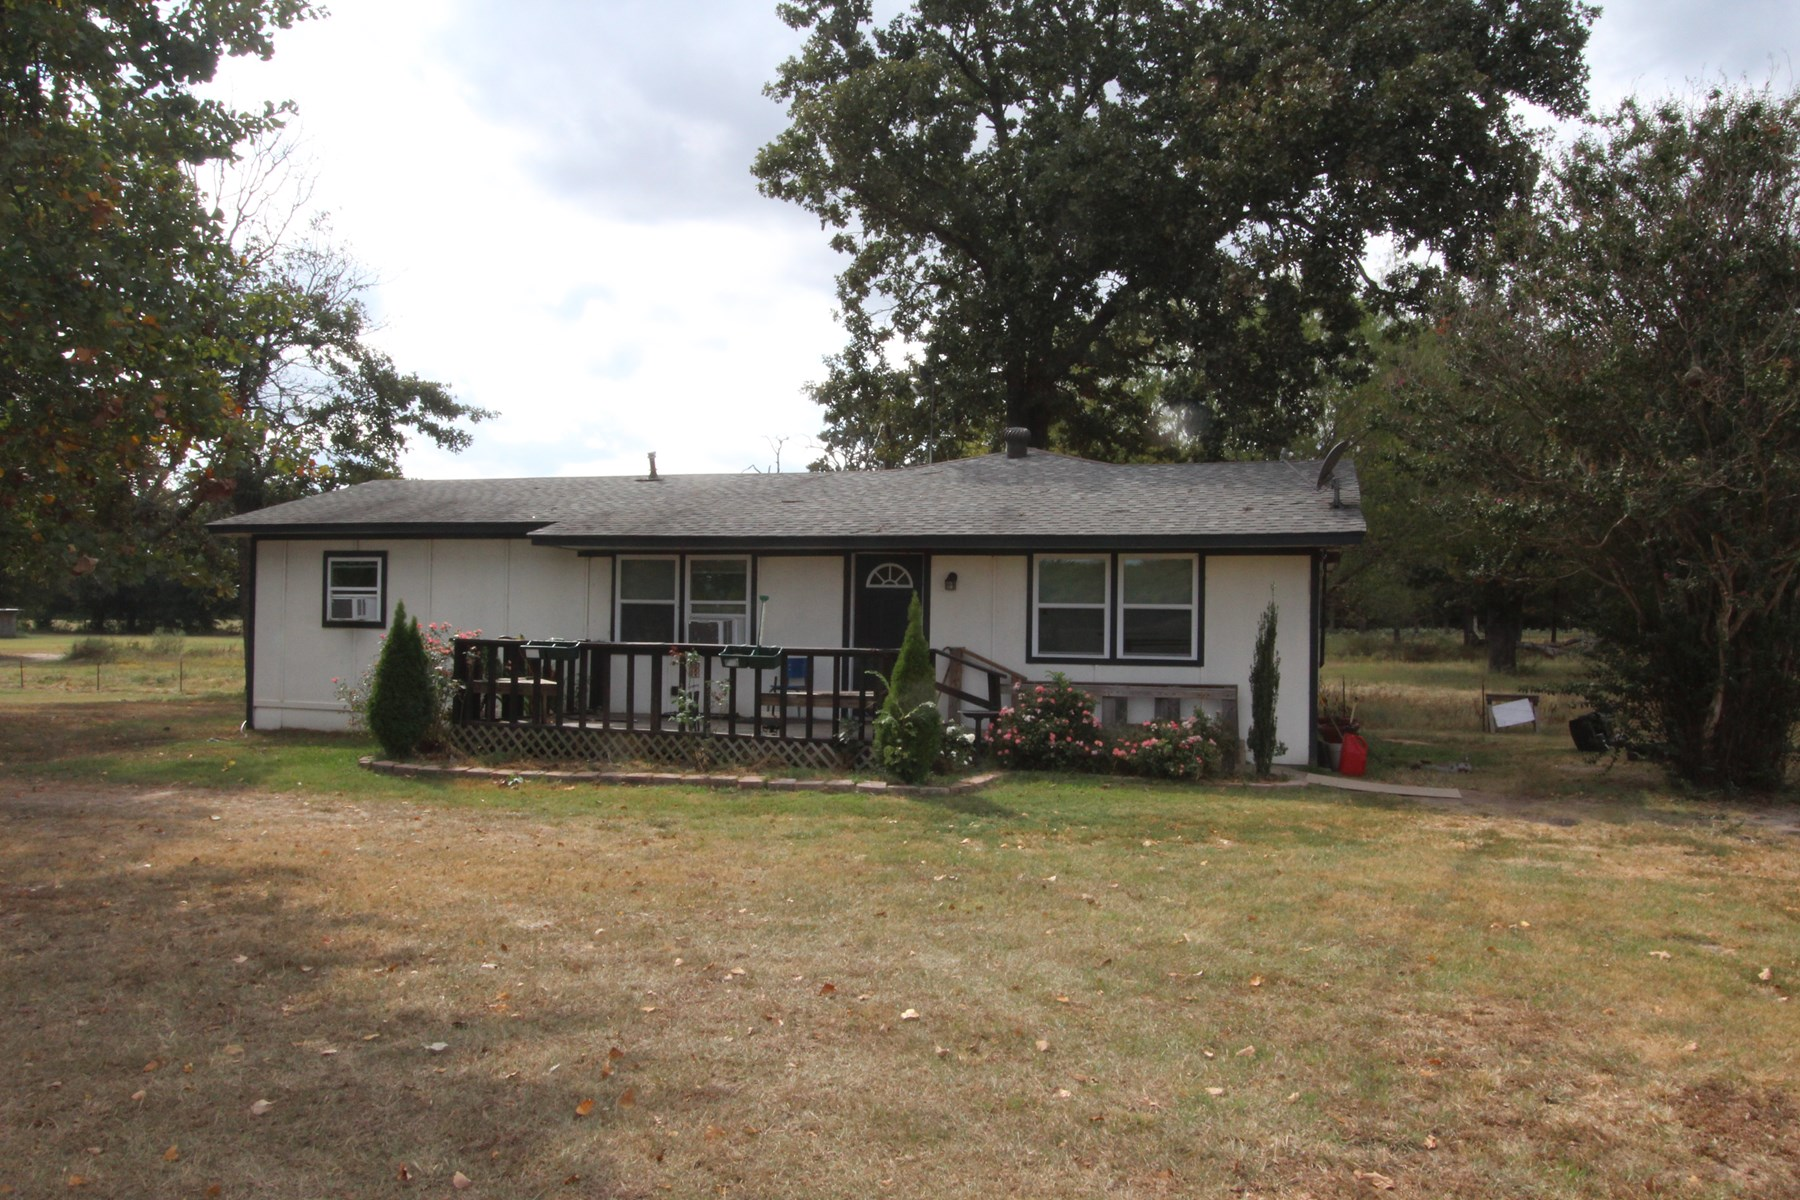 Country Home & Farm Investment For Sale Sumner Texas